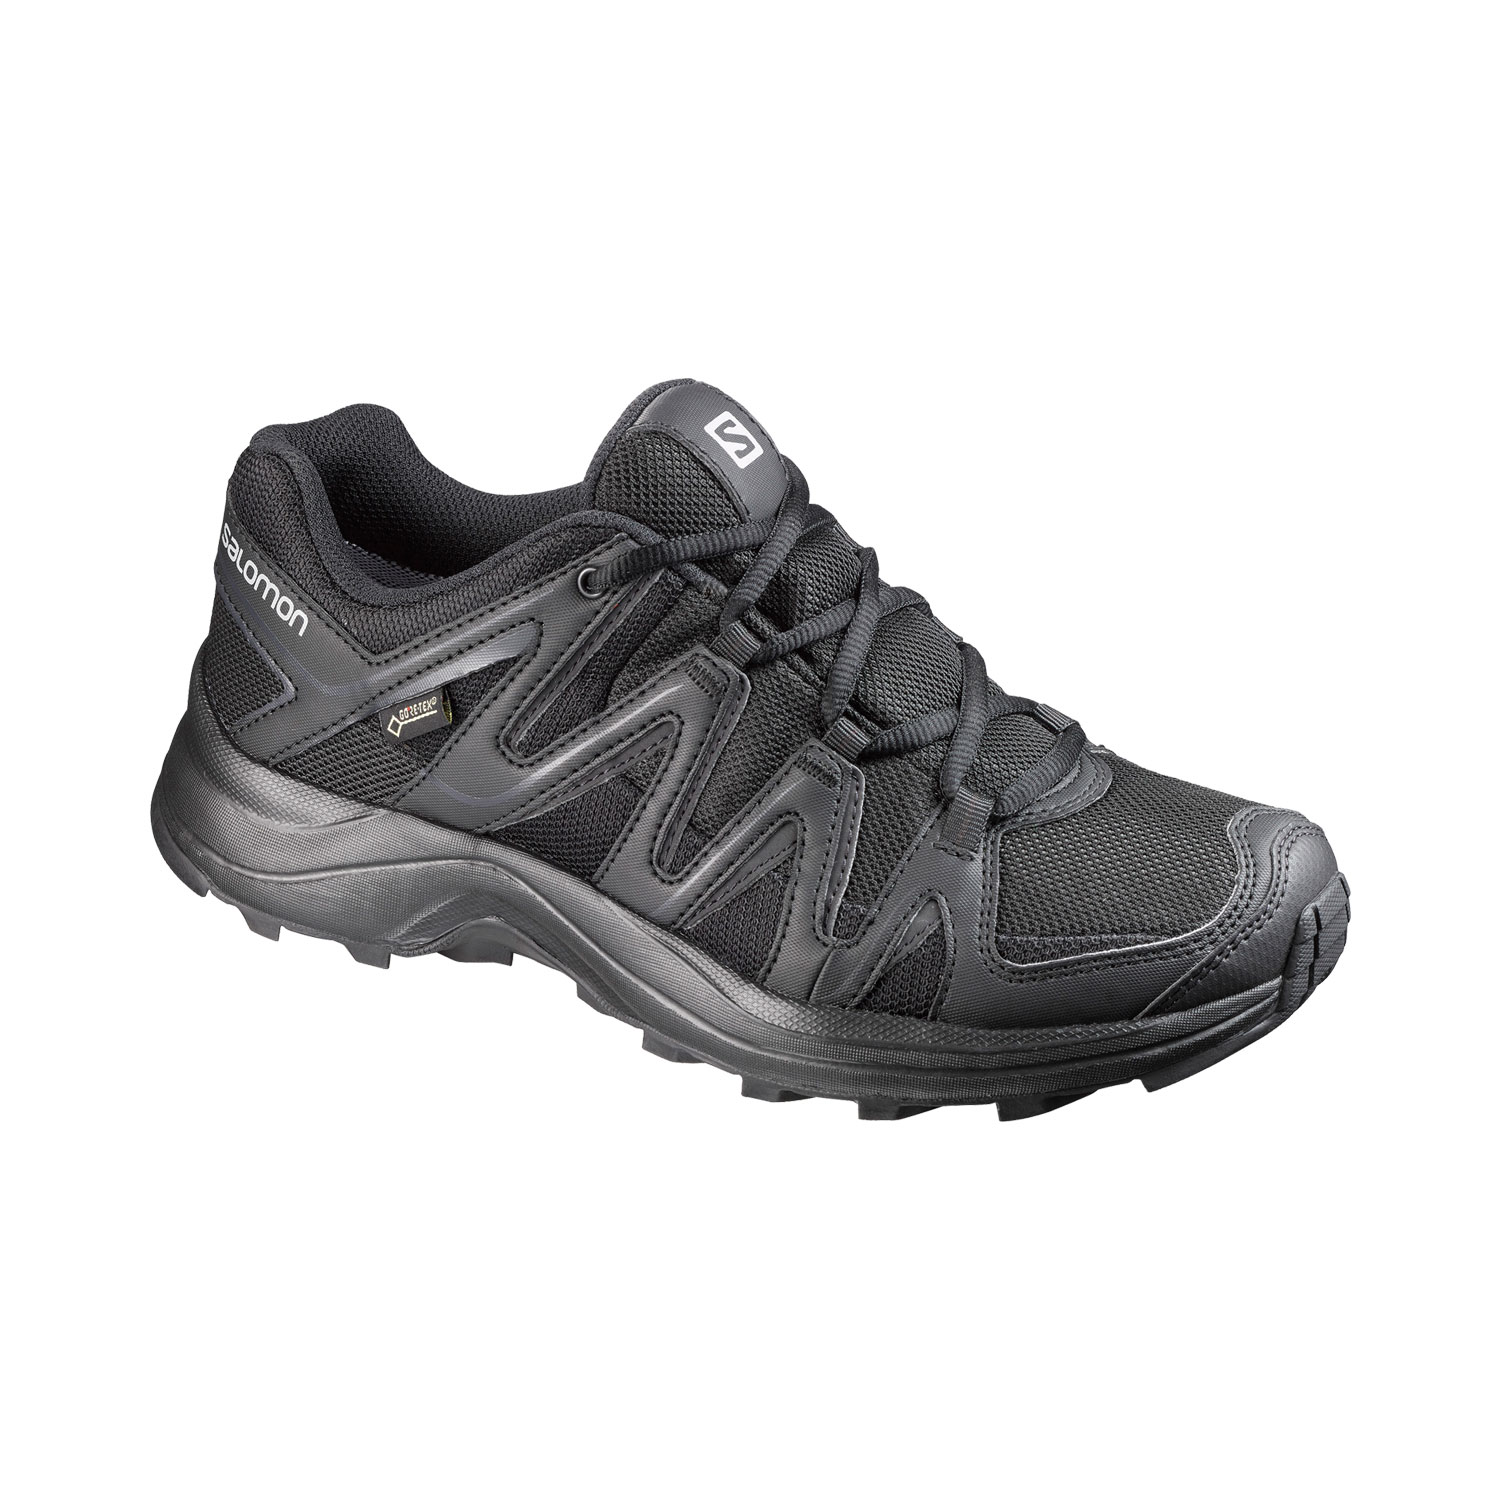 Salomon XA Thena GTX Damen Trail Laufschuhe